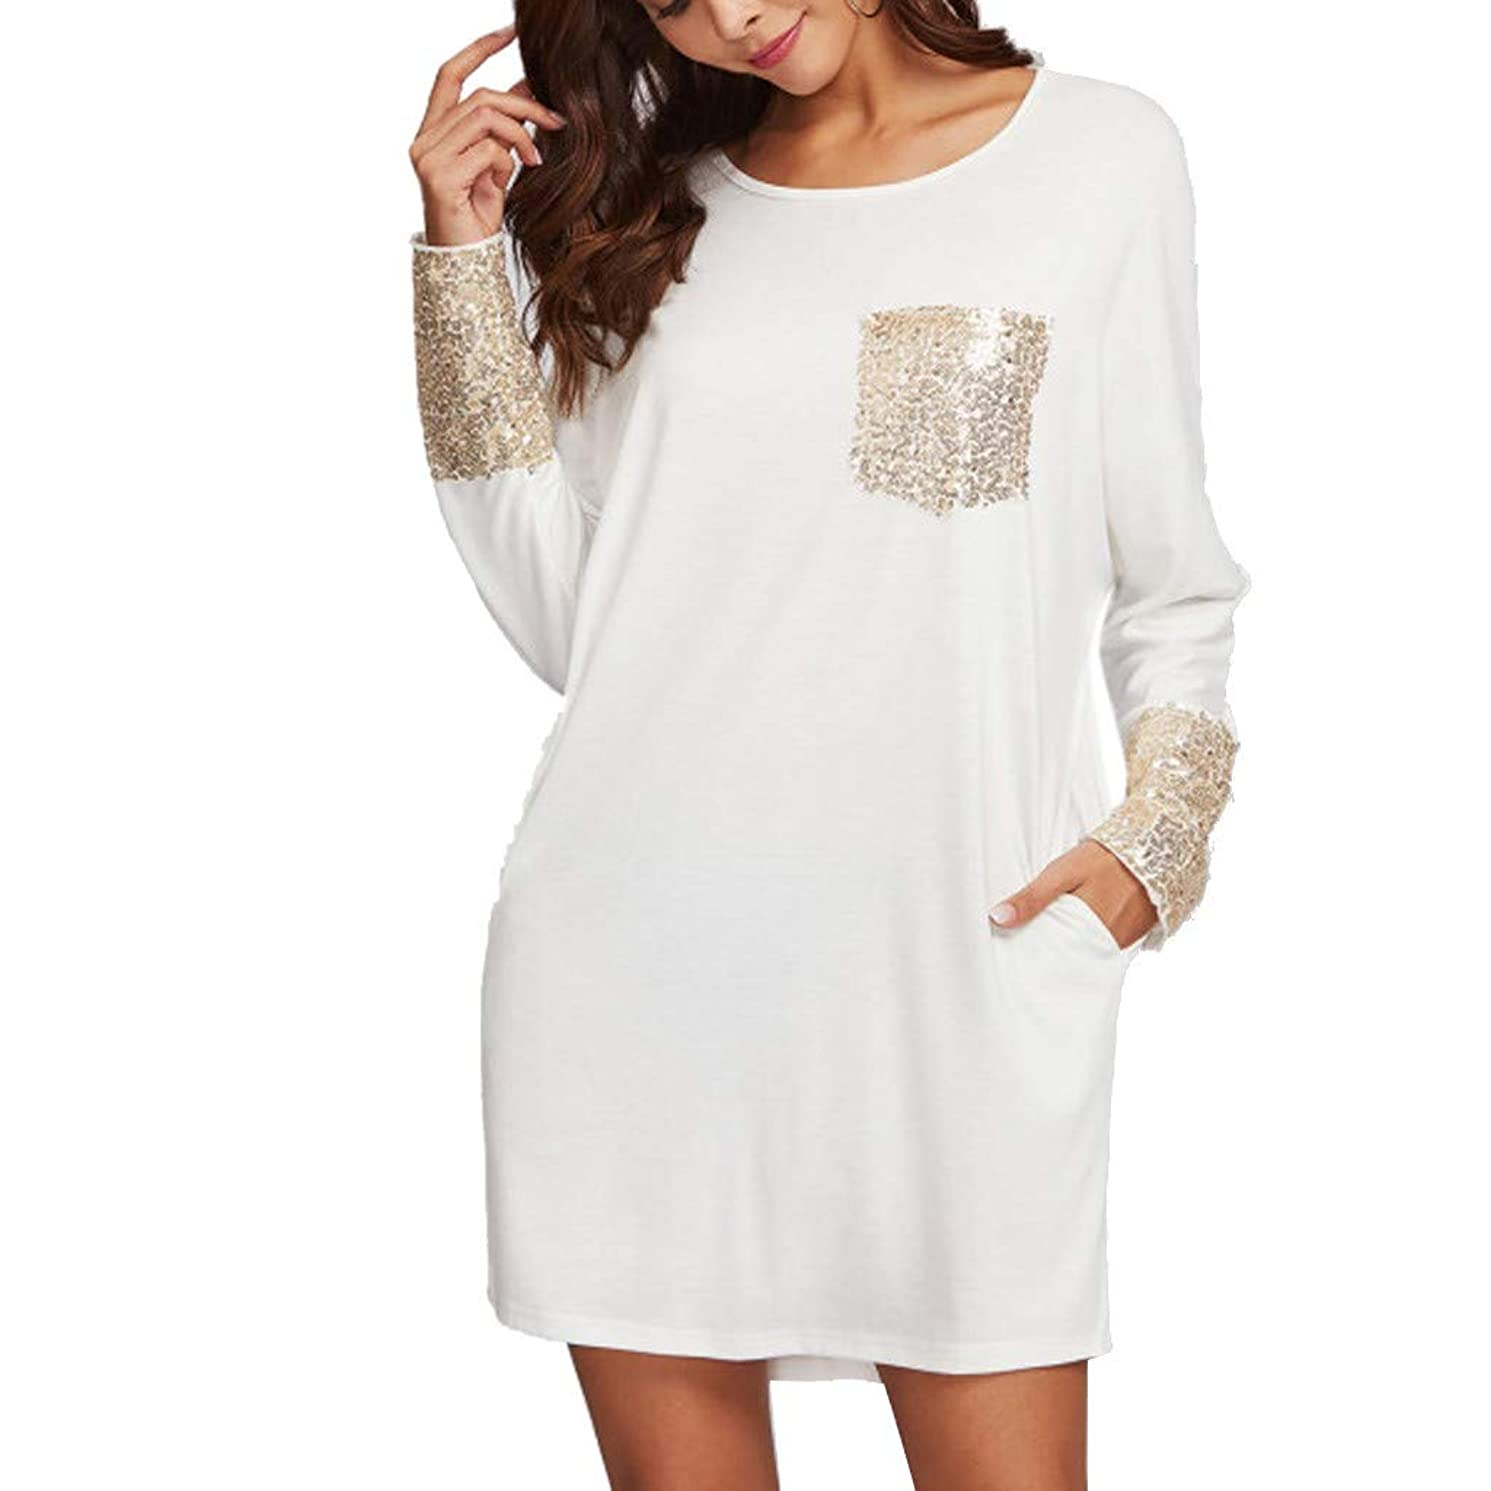 LEXUPA Fashion Womens Casual Sequined Pocket Long Sleeve Loose Round Neck Dress